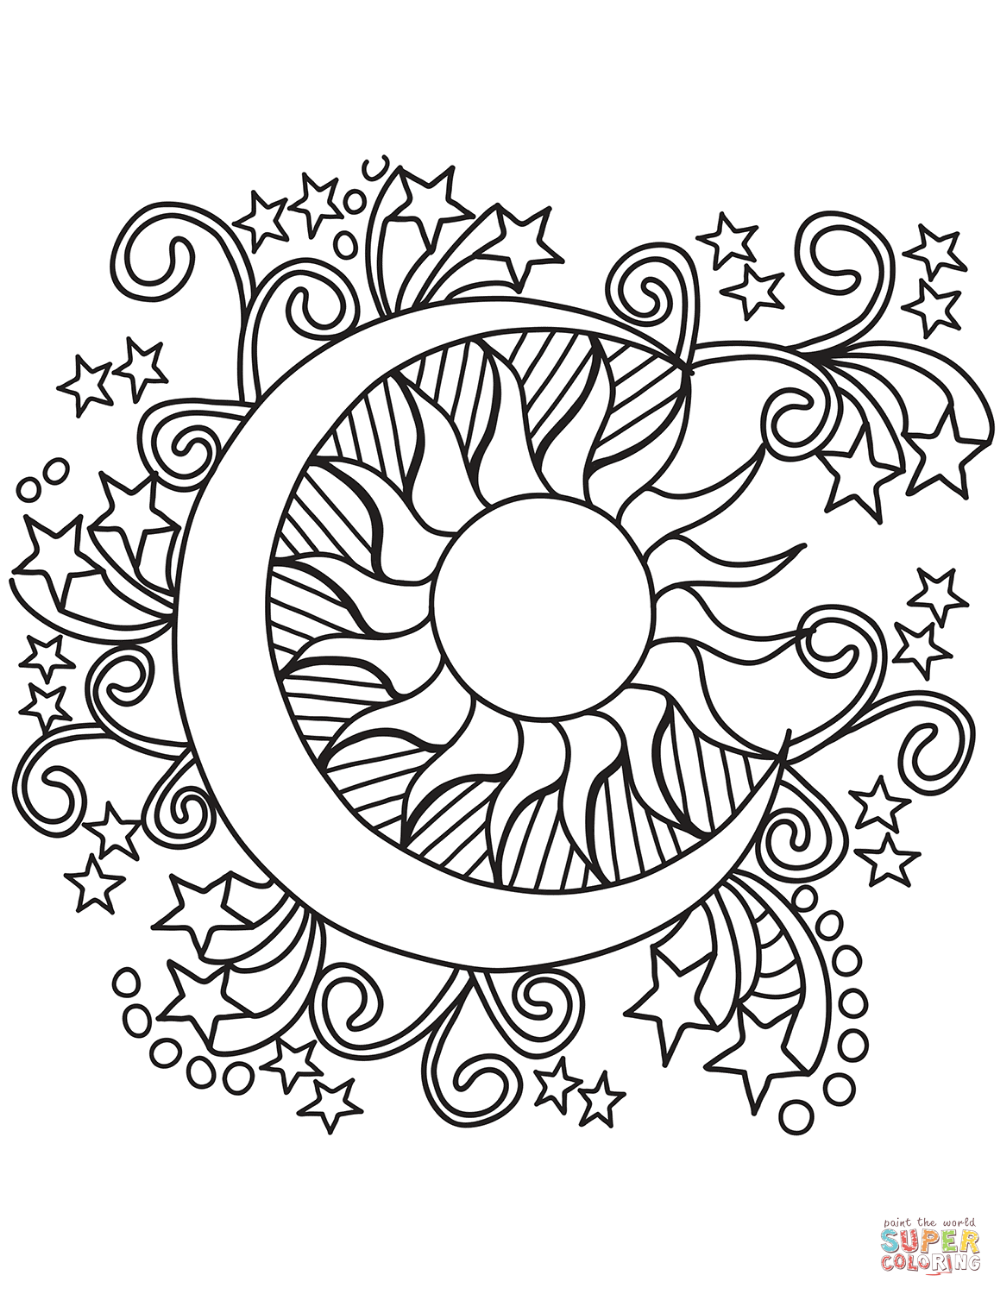 - Pin By Stephanie Chiu On Coloring Pages Star Coloring Pages